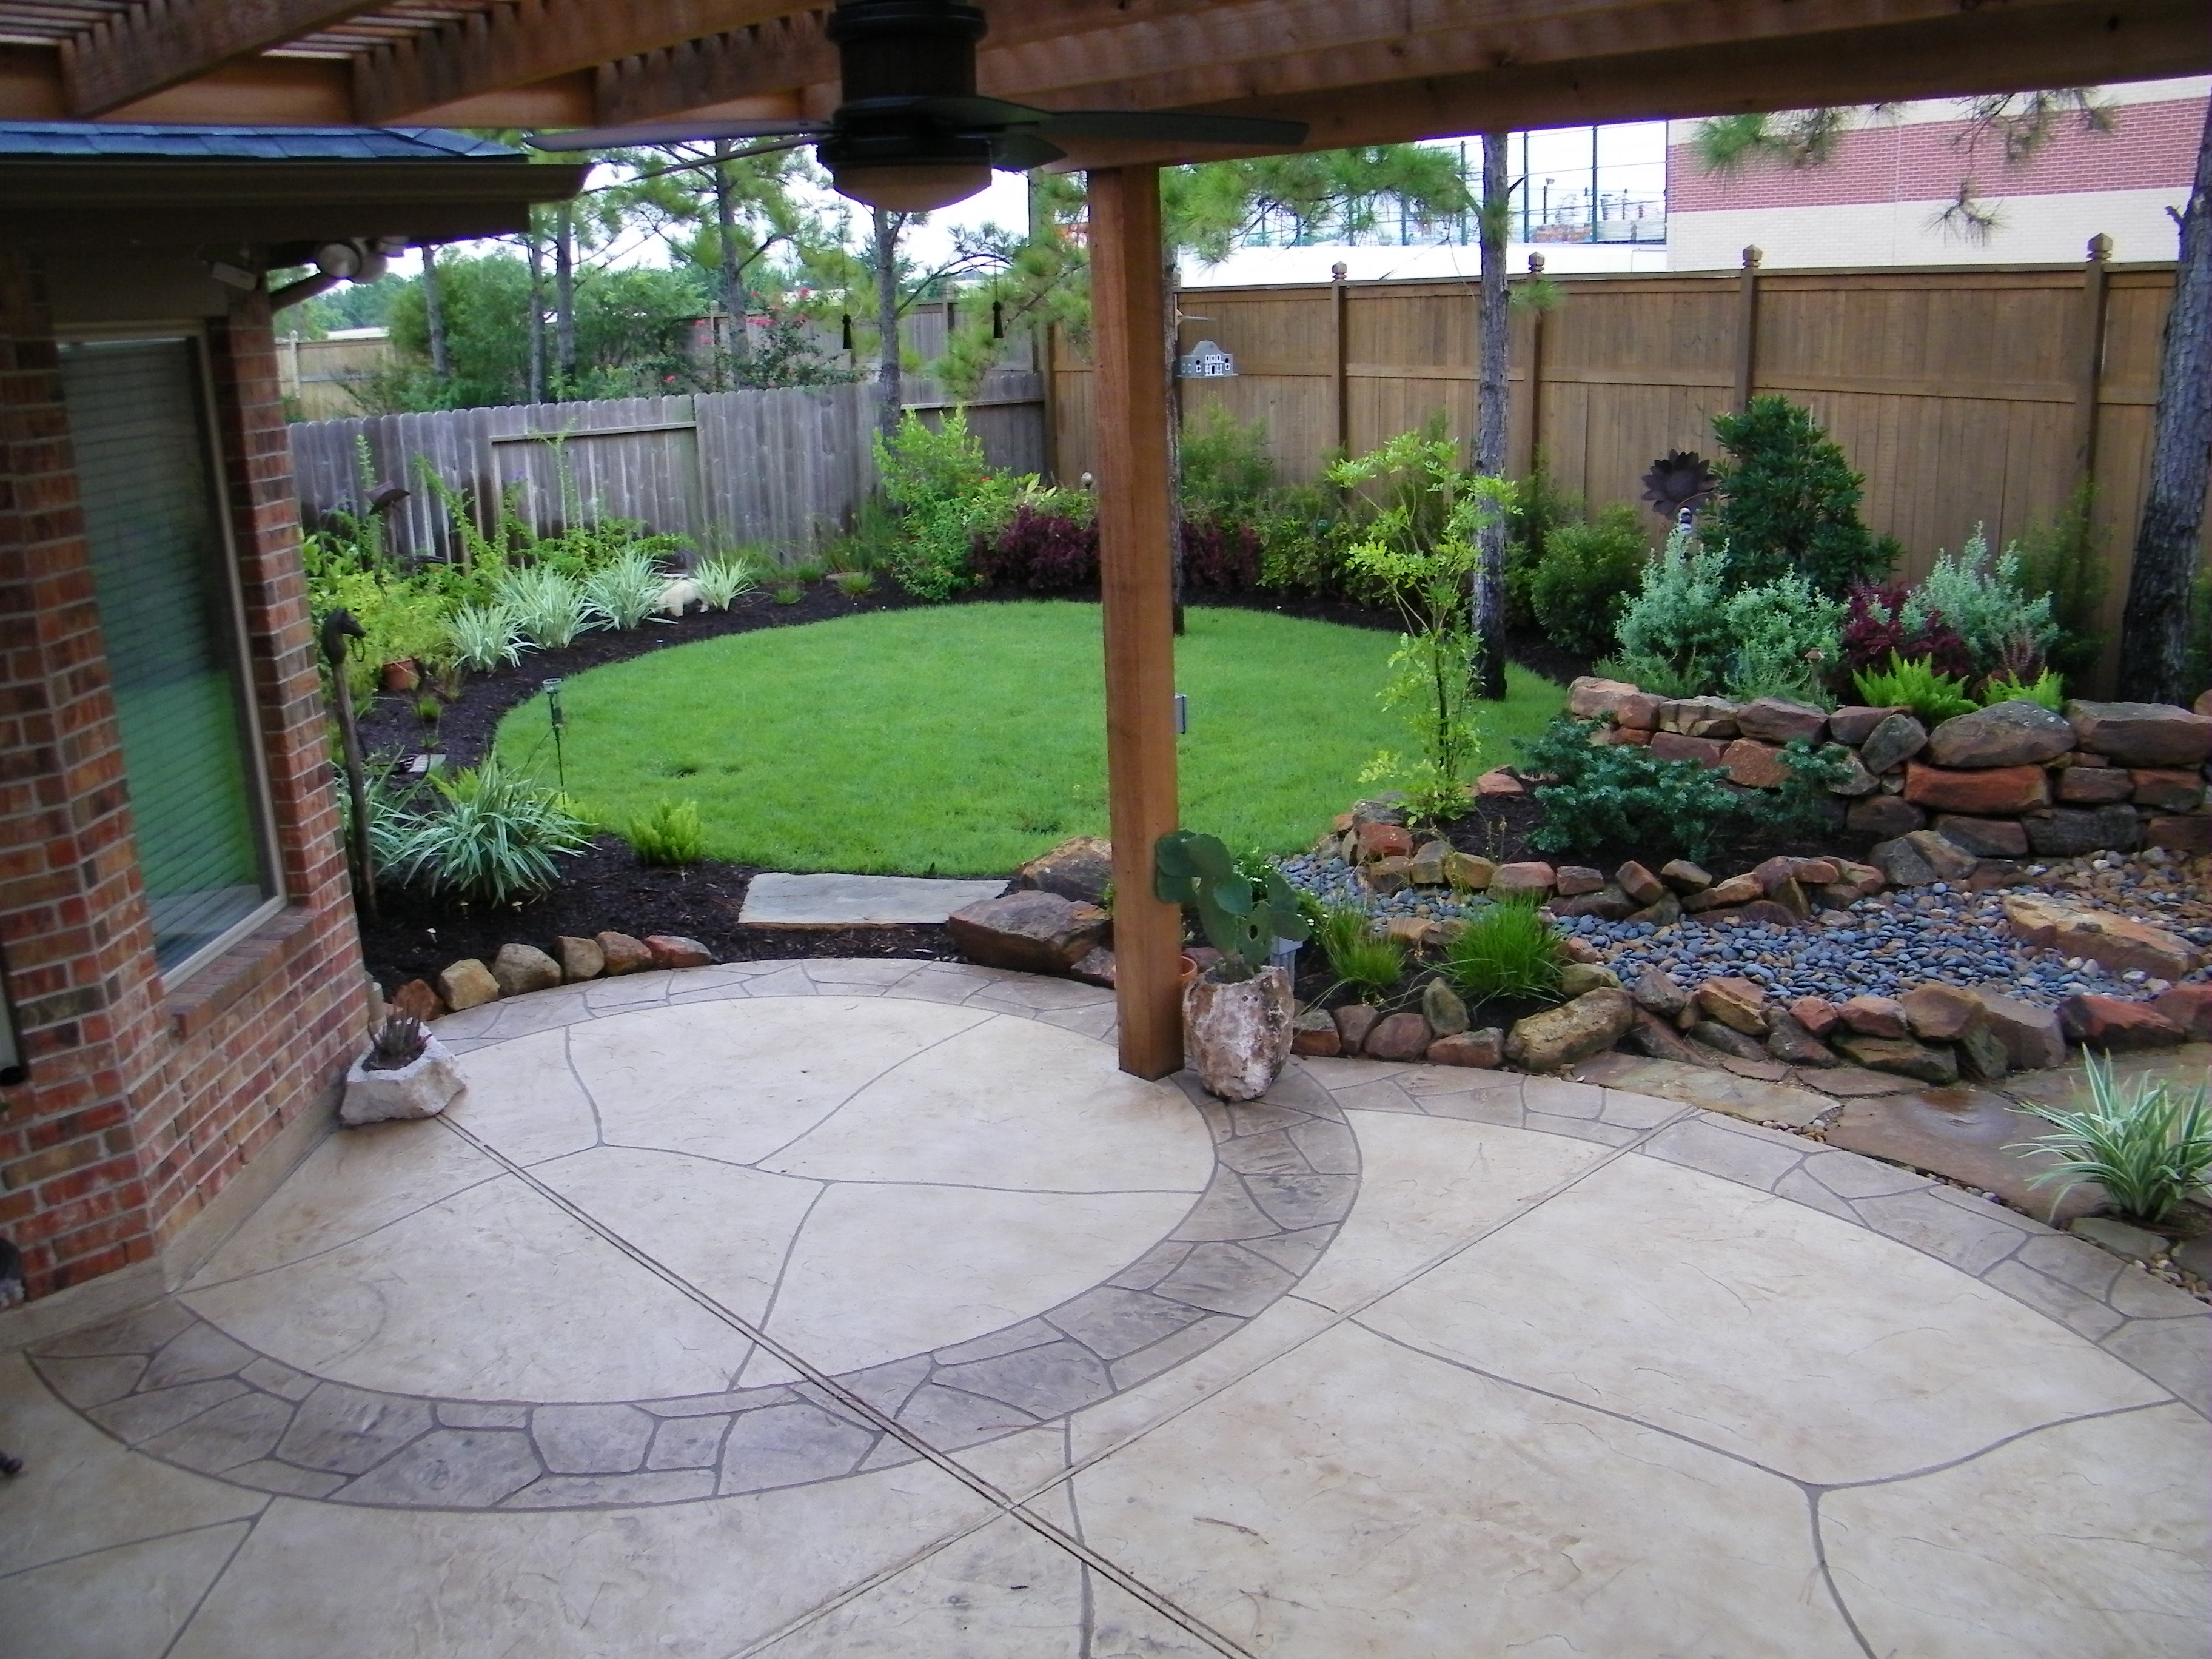 landscaping_11